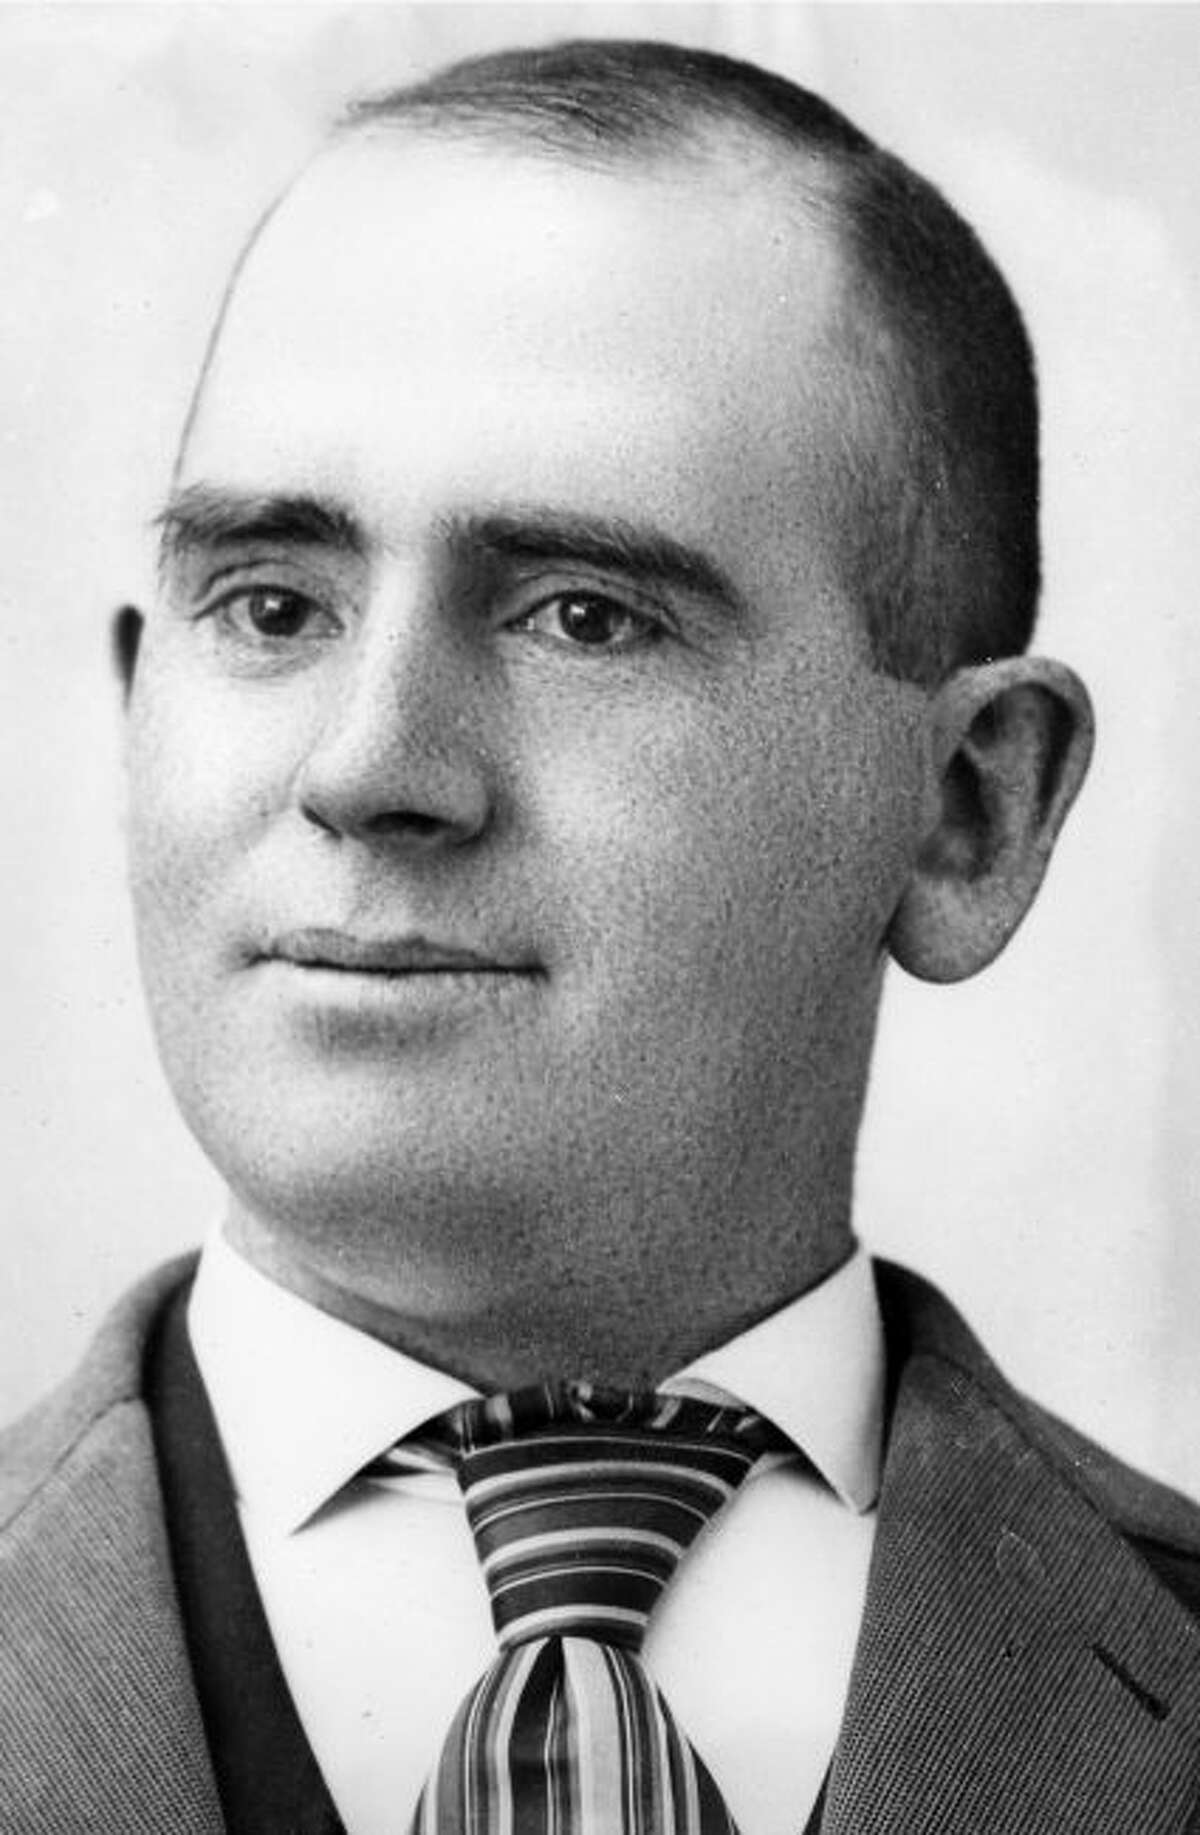 Michael Fay who was first elected Mayor of Manistee in April 1901 was one of the main people who started the transition in turning the city into a modern community with paved streets and sidewalks.